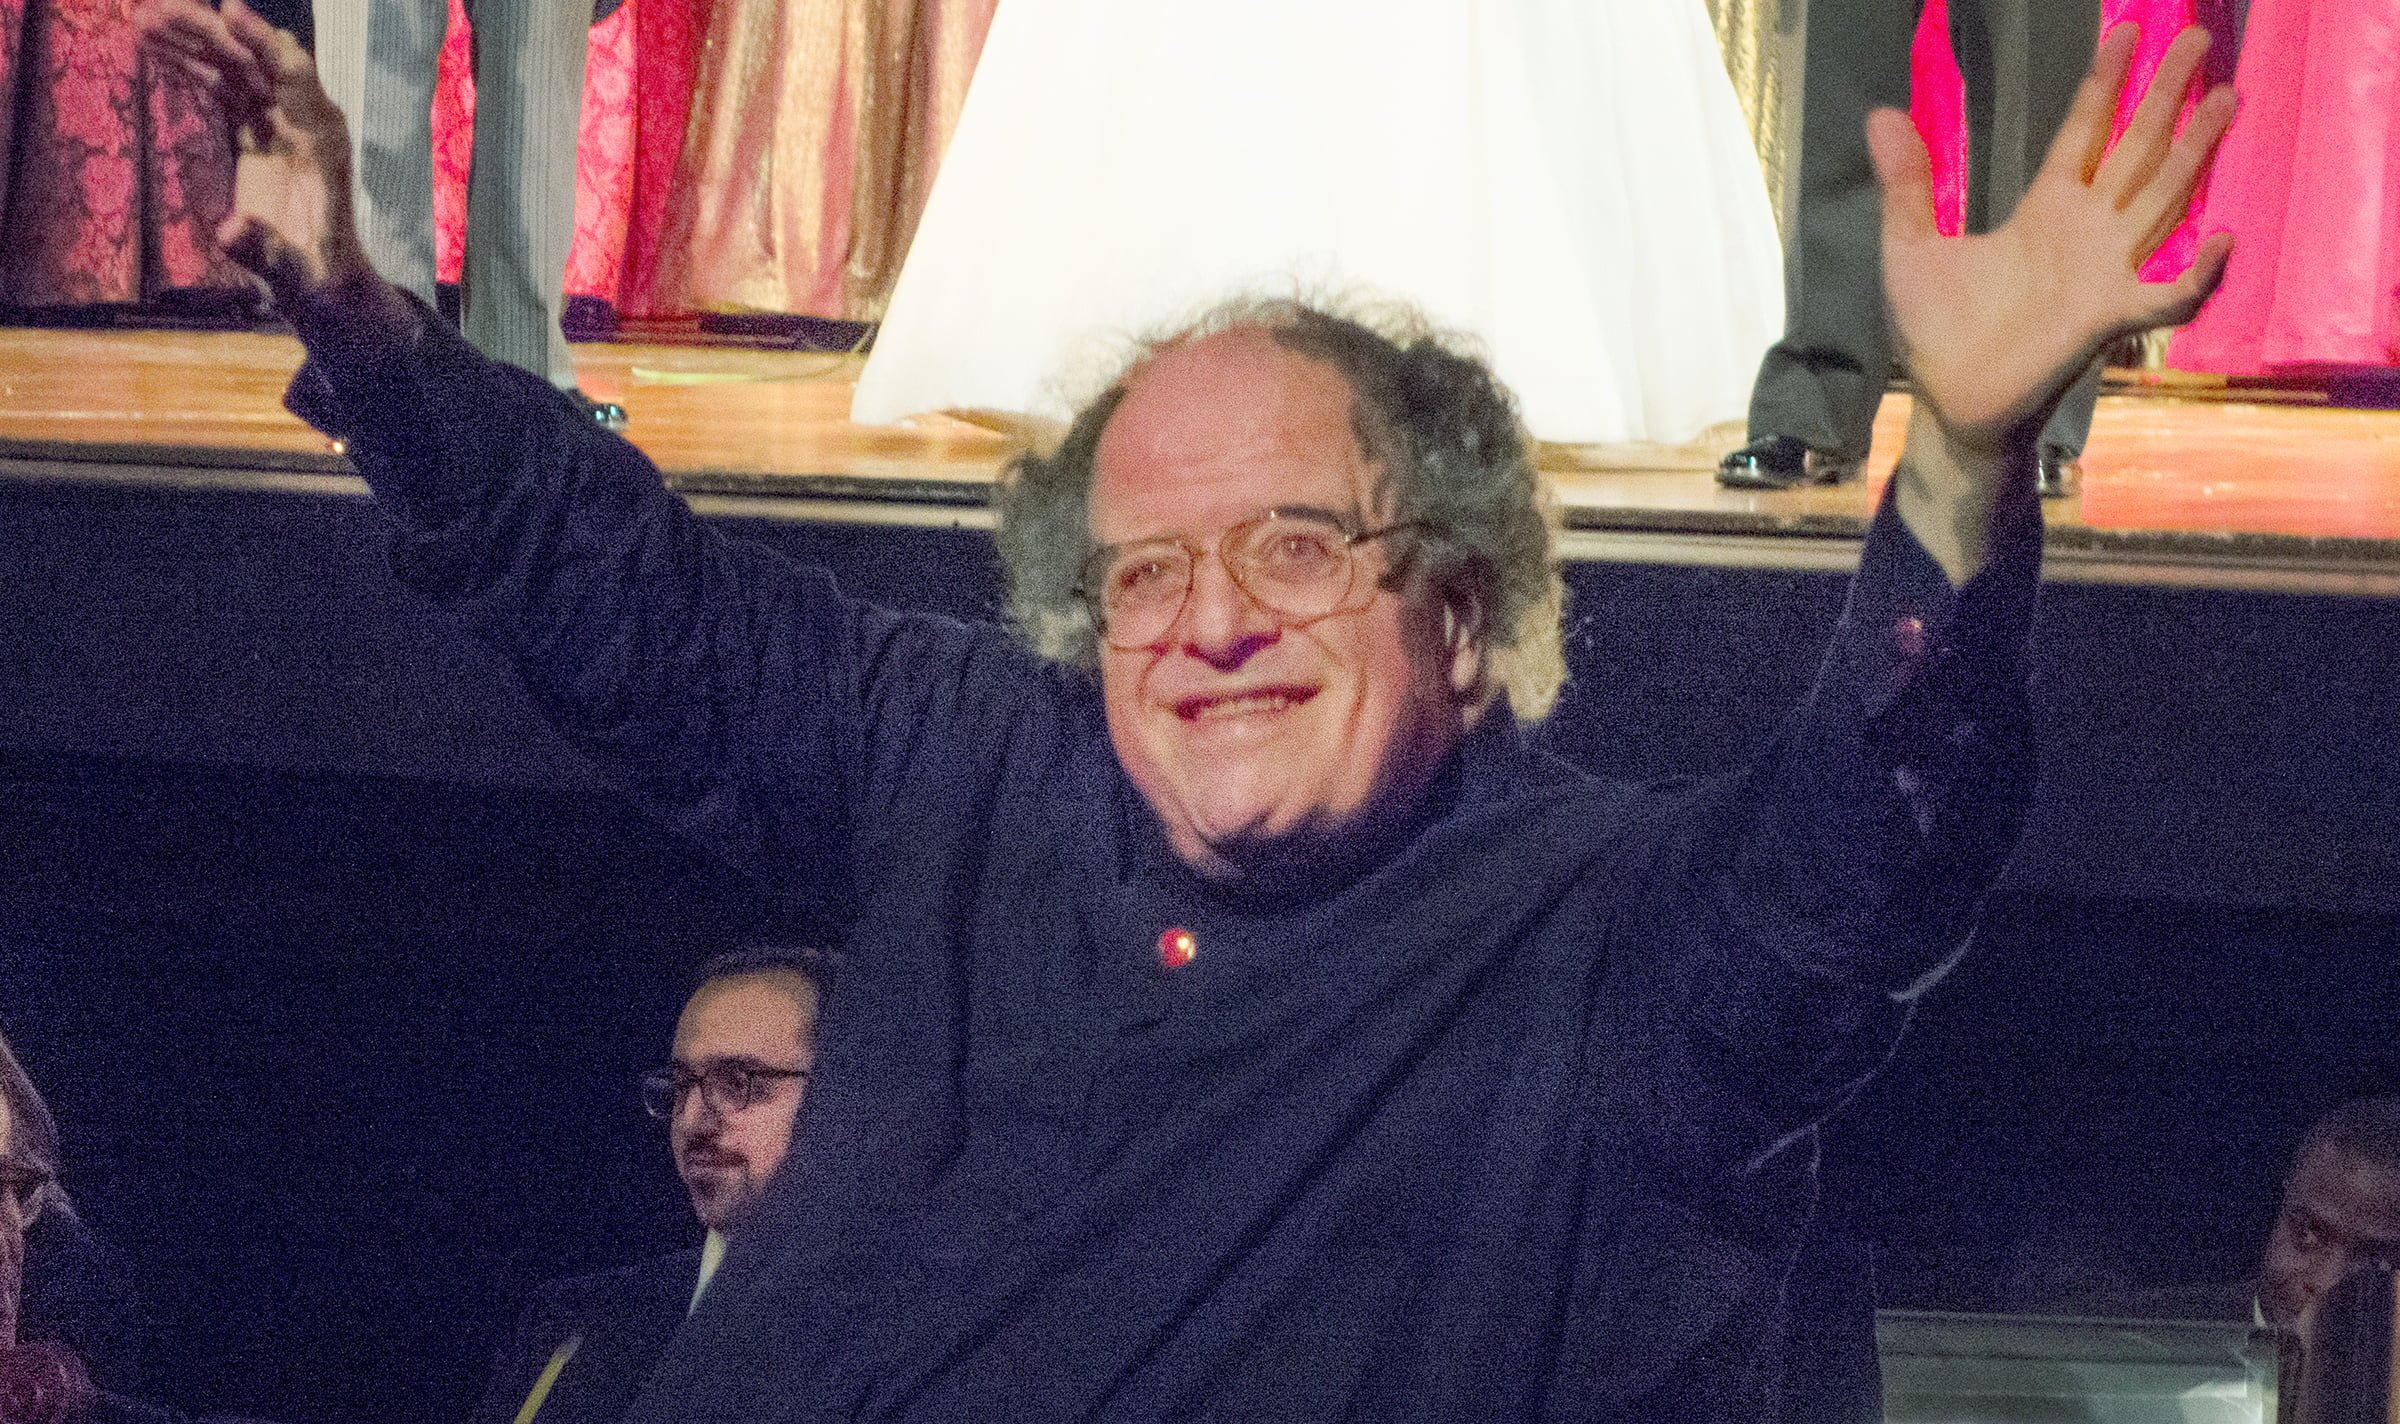 New York's Metropolitan Opera suspends conductor James Levine after sex abuse accusations